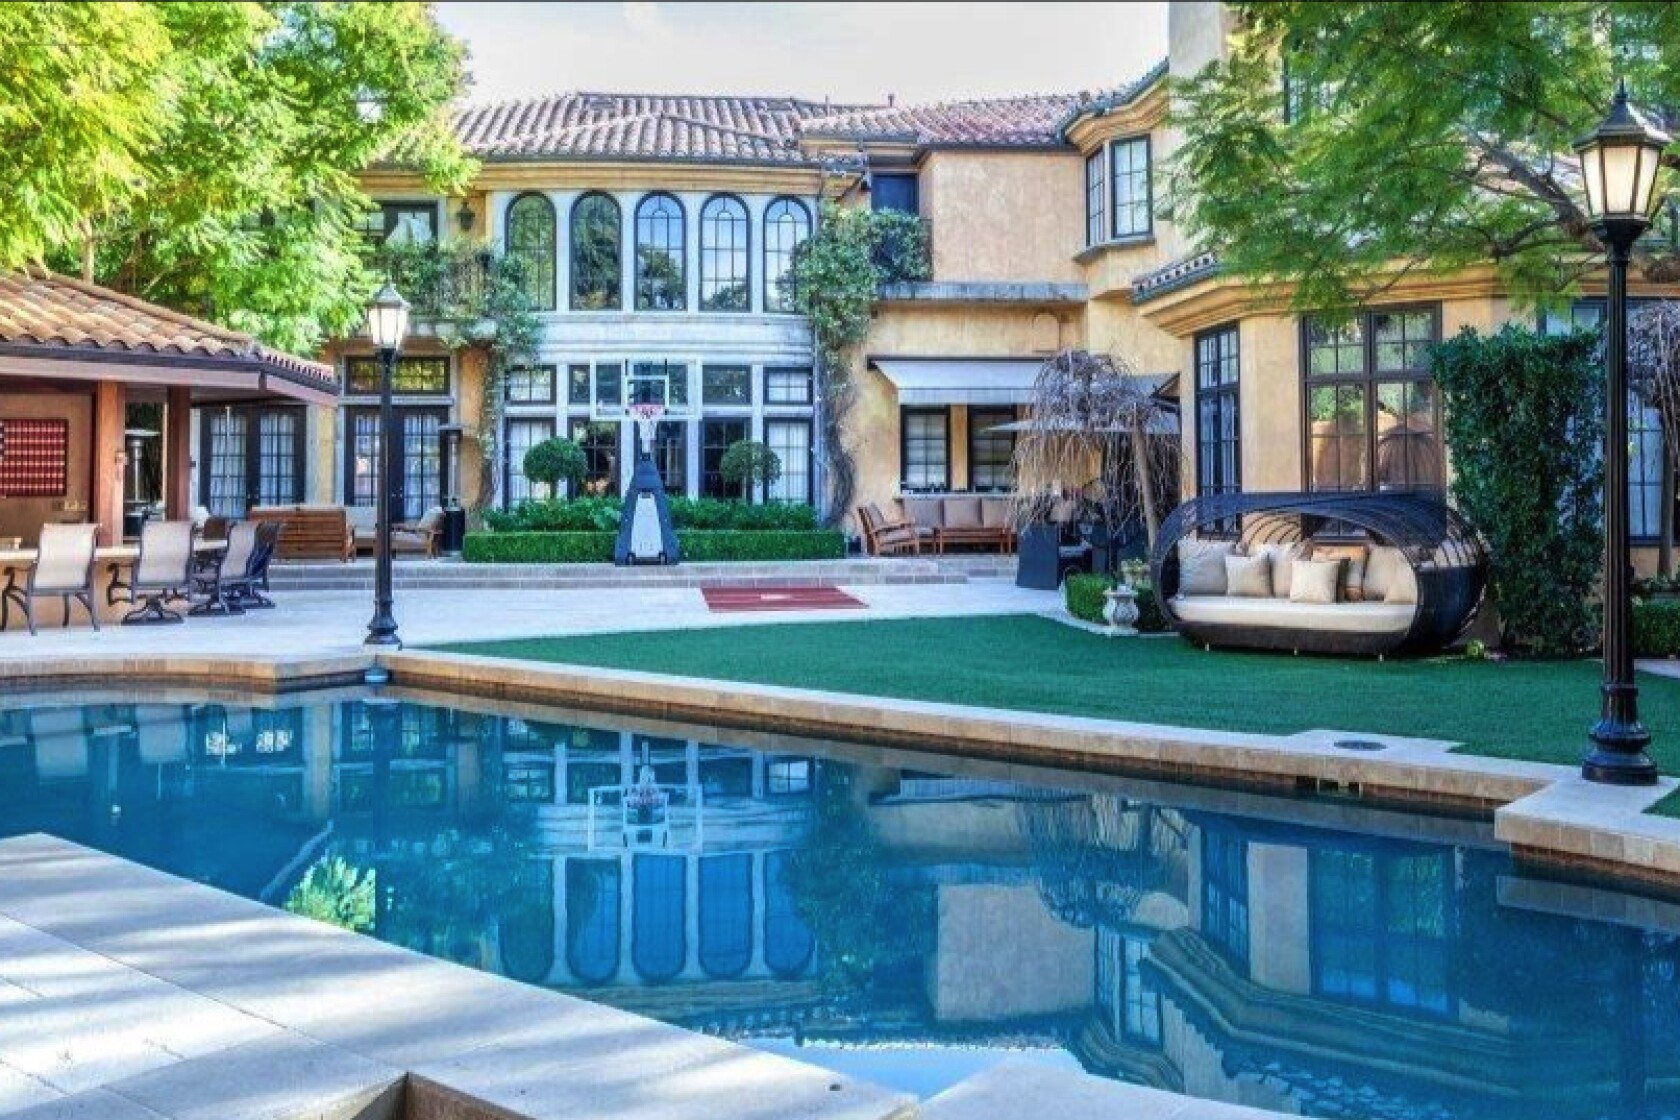 Charlie Sheen Puts His L A Area Home Up For Sale At 10 Million Los Angeles Times